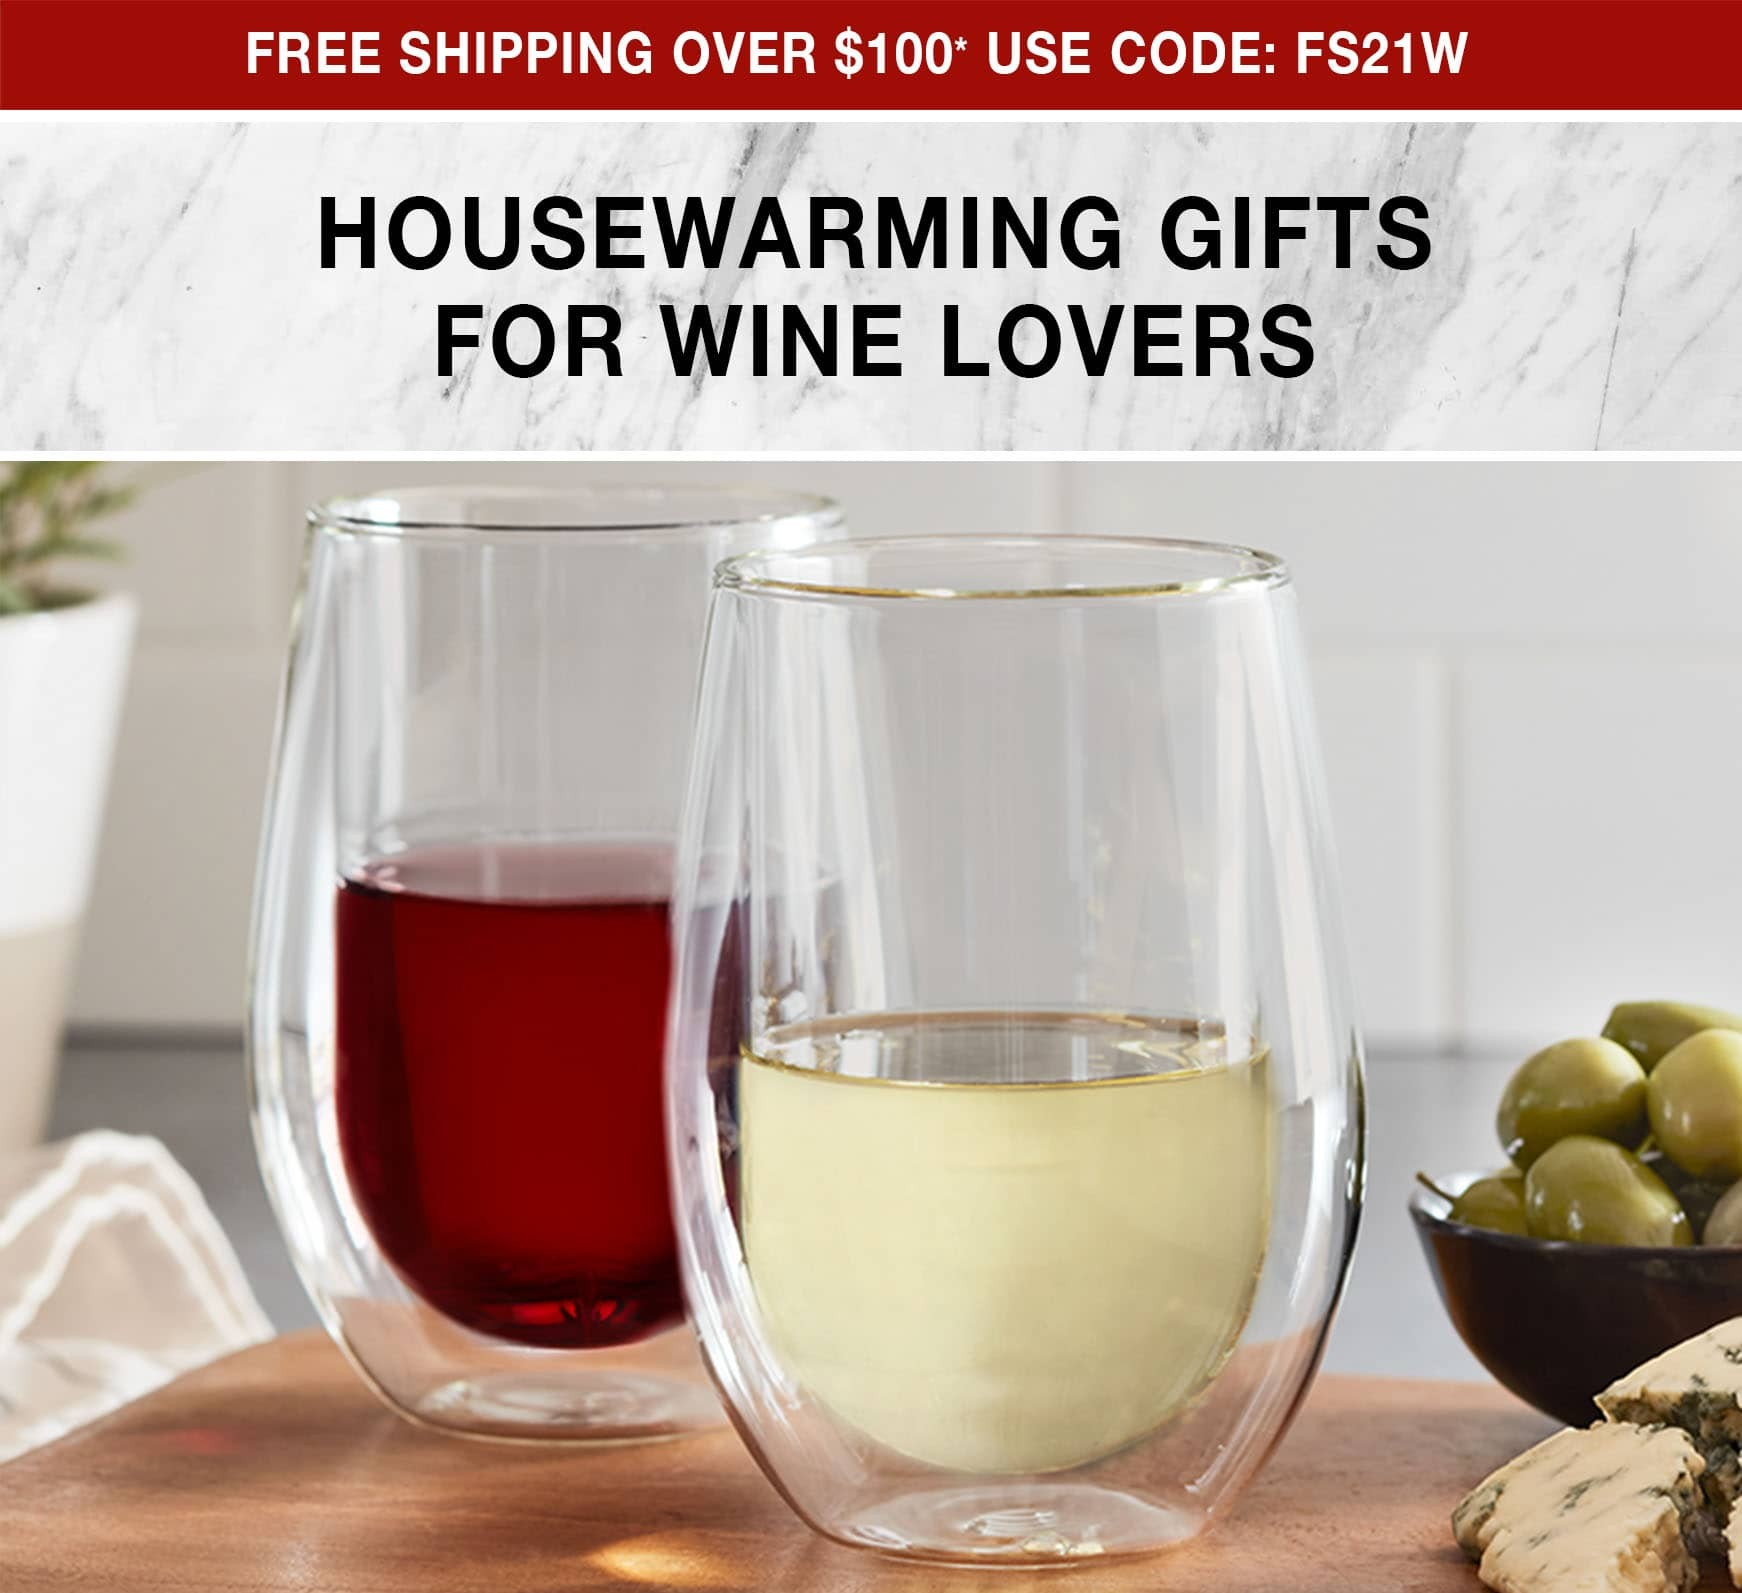 Housewarming Gifts for Wine Lovers - Free Shipping over $100 use code FS21W